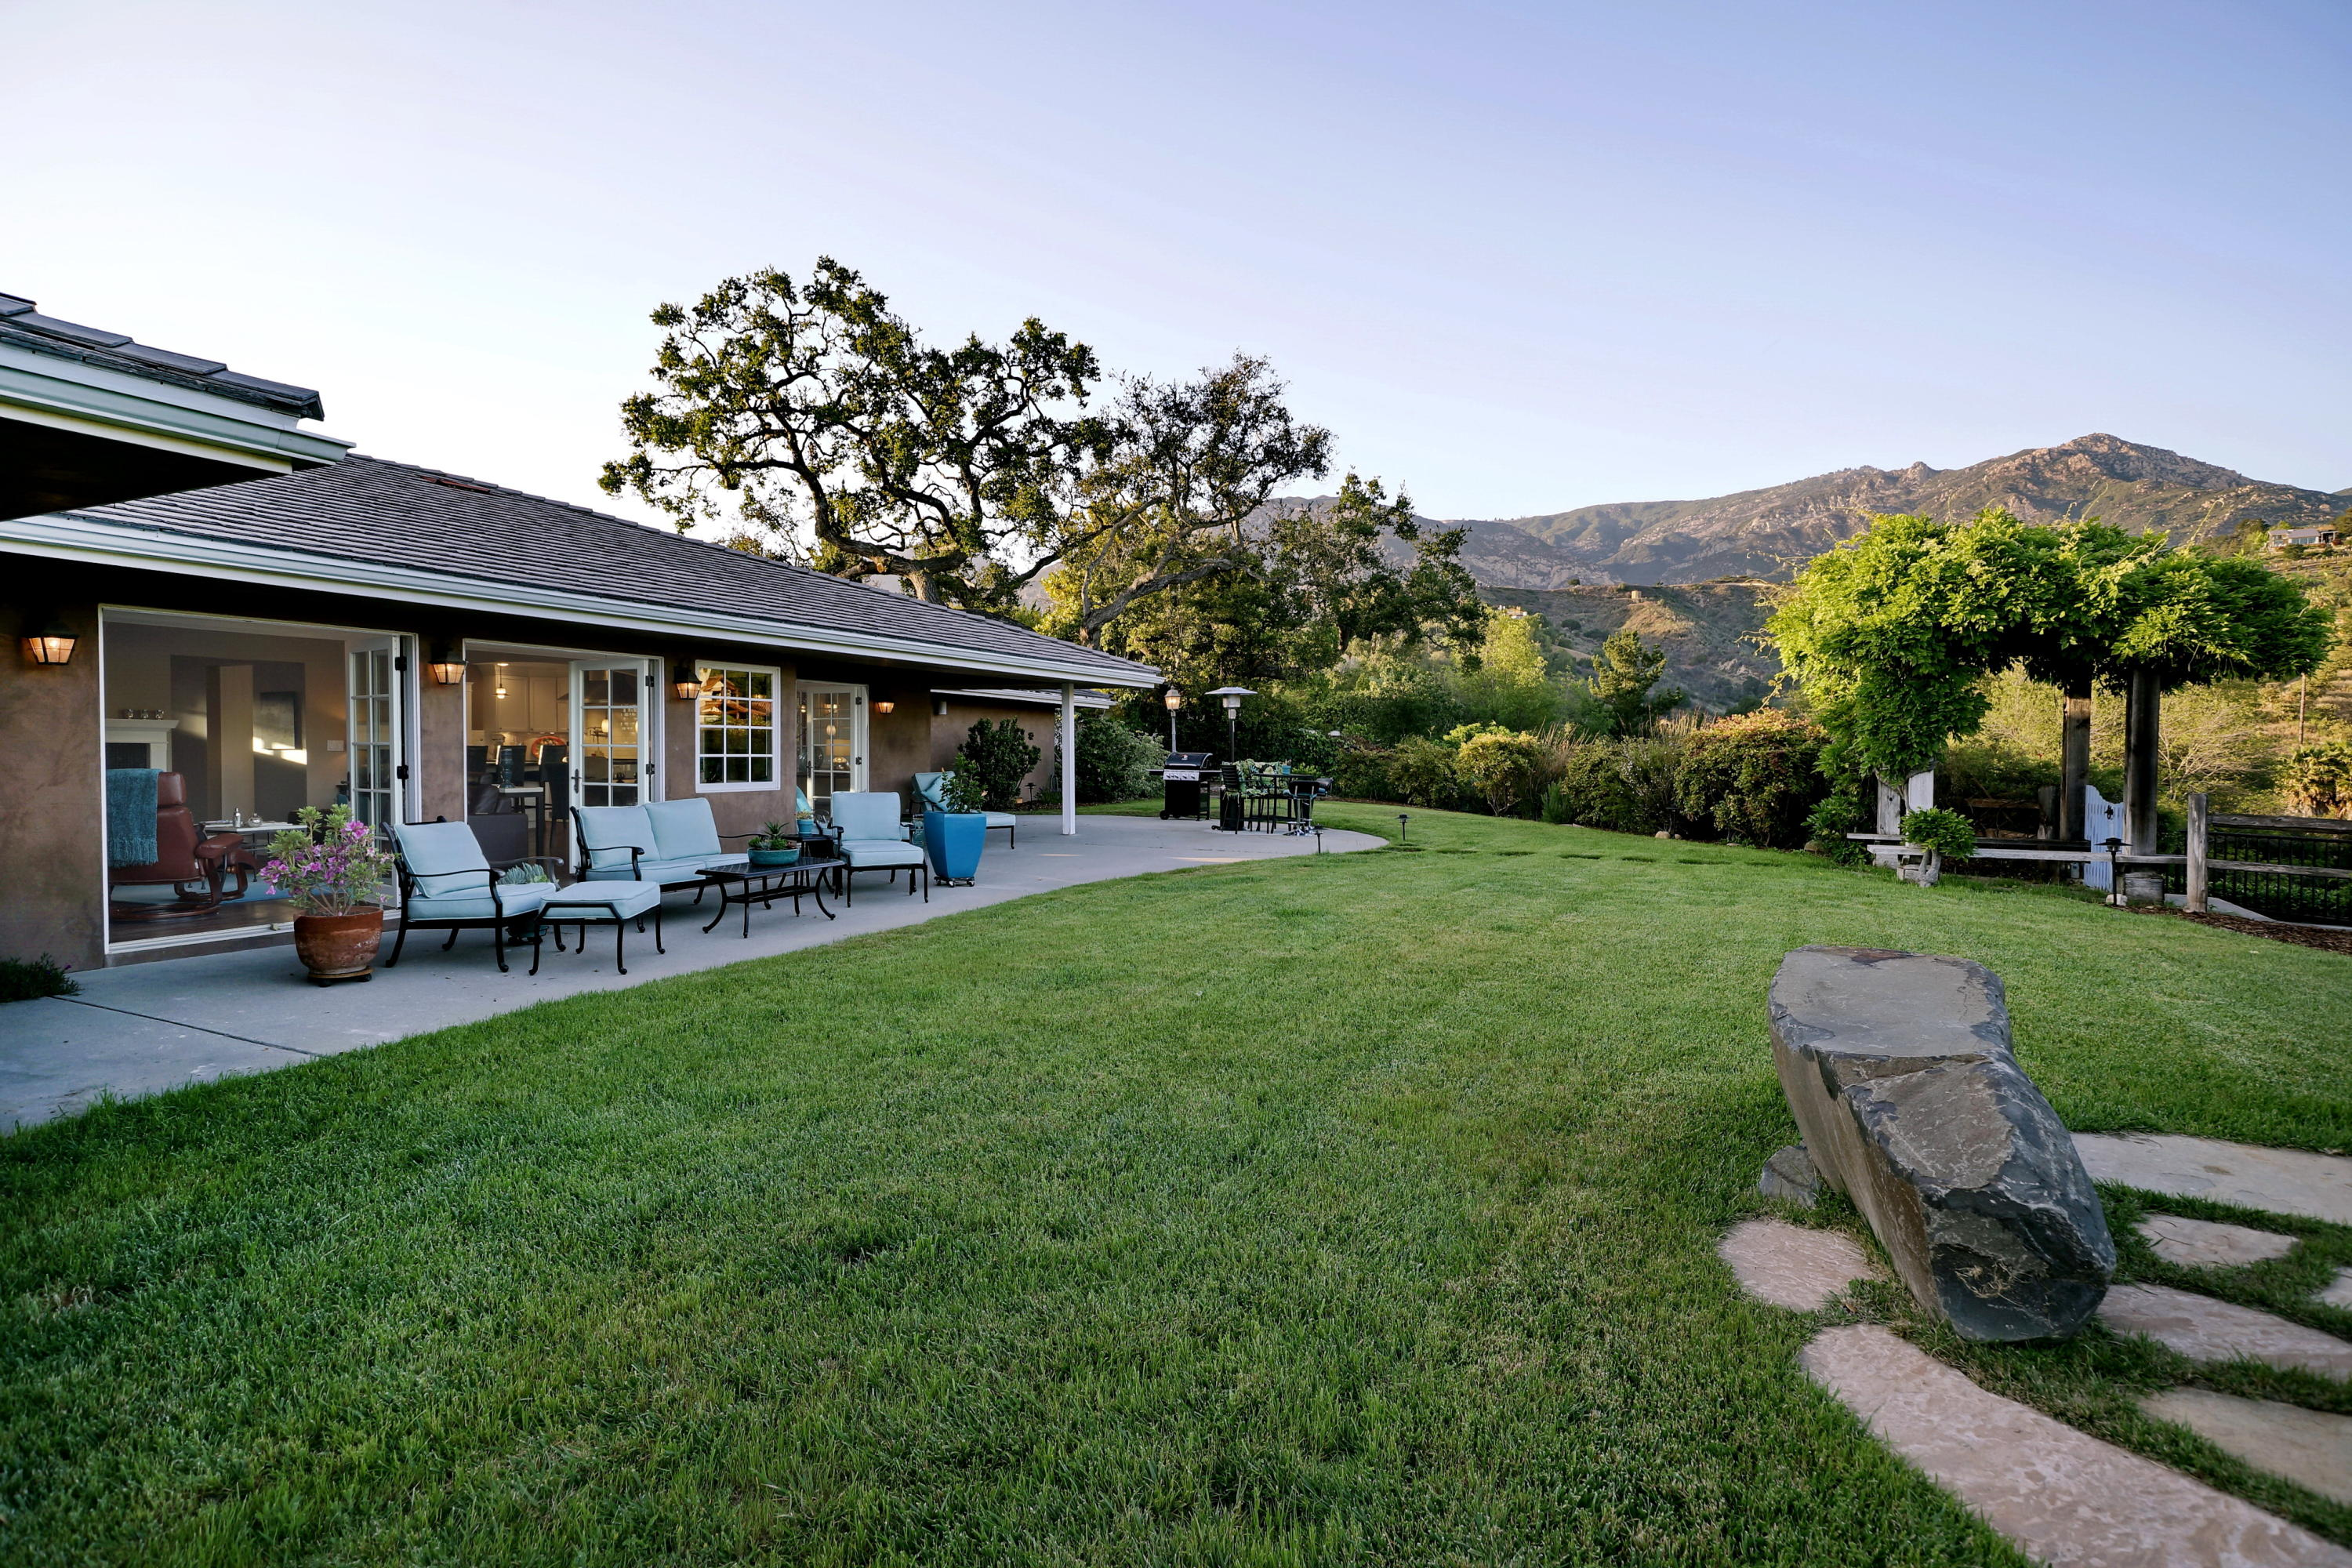 Property photo for 108 Northridge Rd Santa Barbara, California 93105 - 16-1573